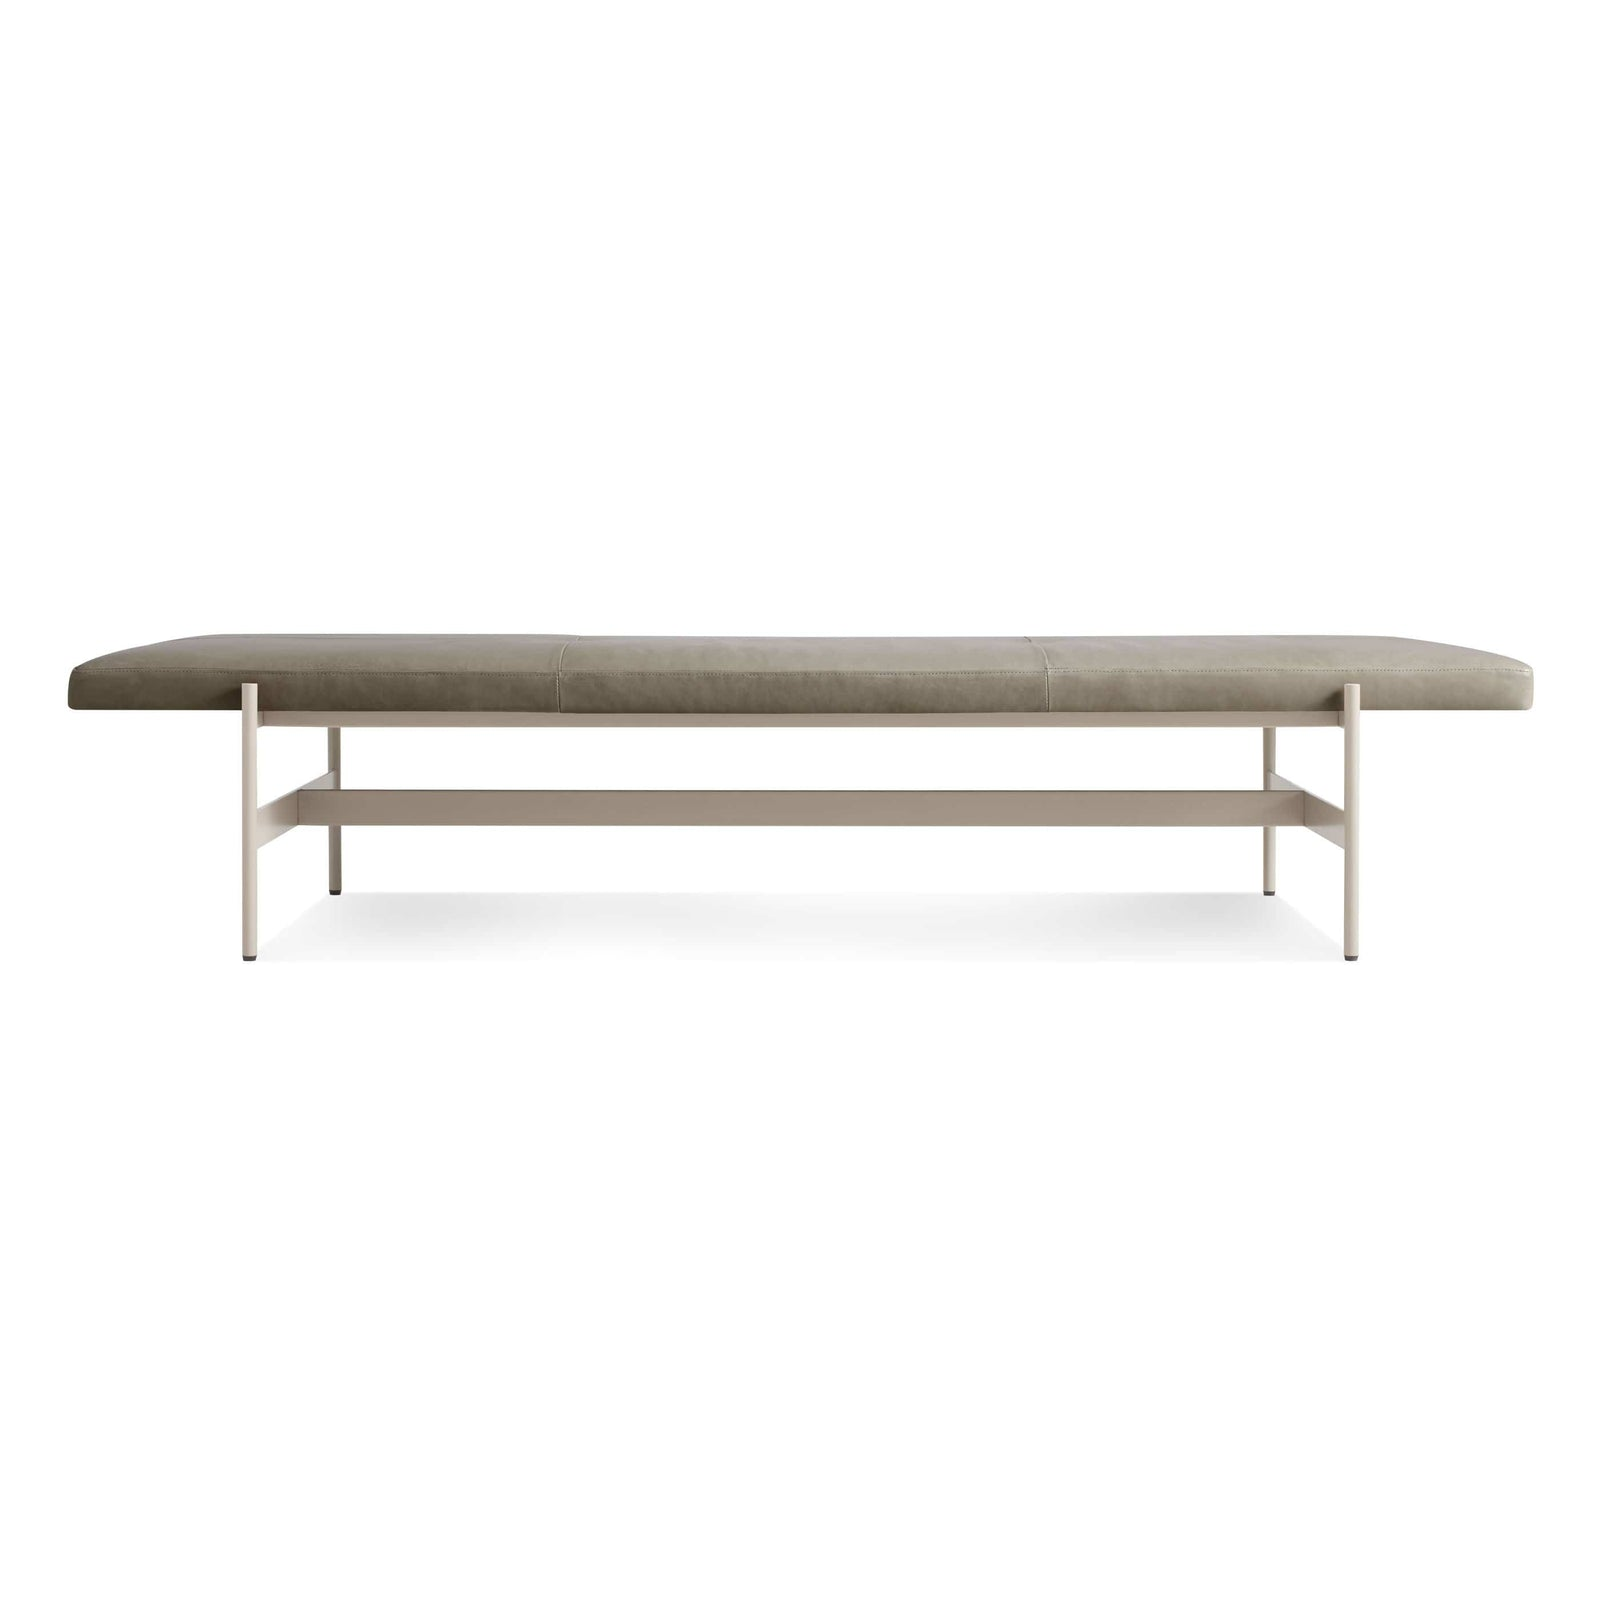 "Blu Dot Furniture 75"" / Grey Green Leather / Putty Daybench"